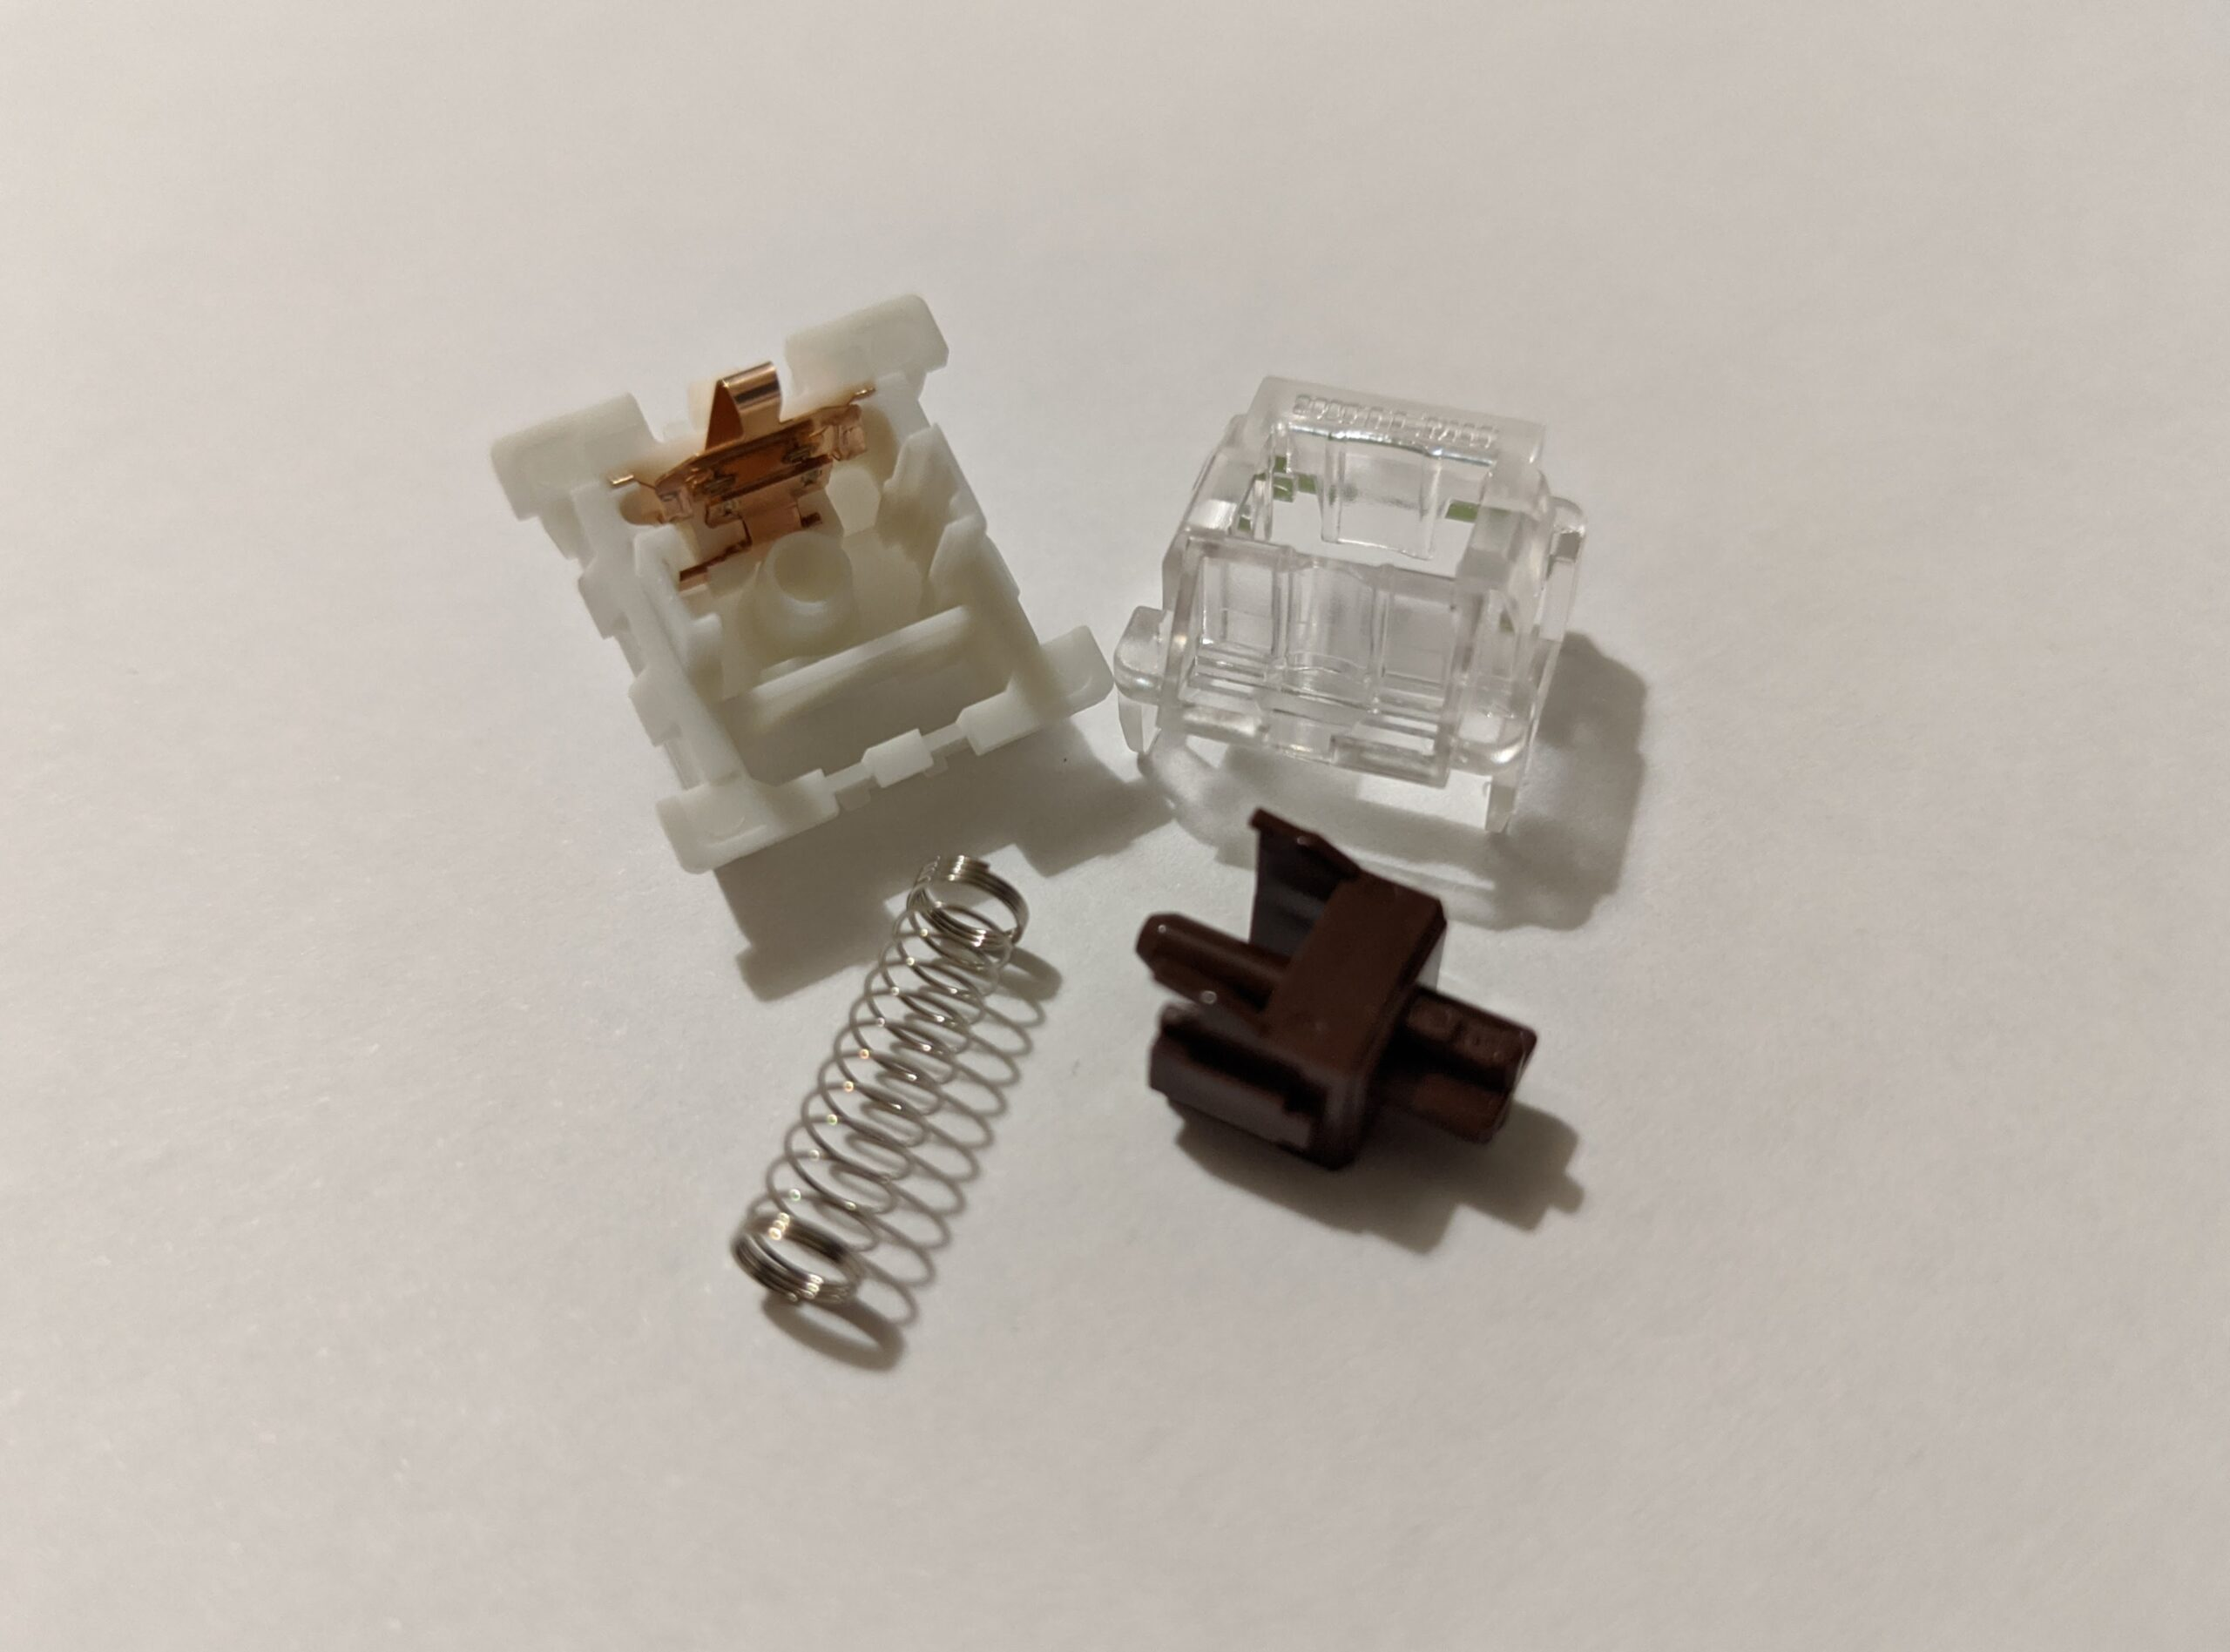 Outemu Brown switch disassembled